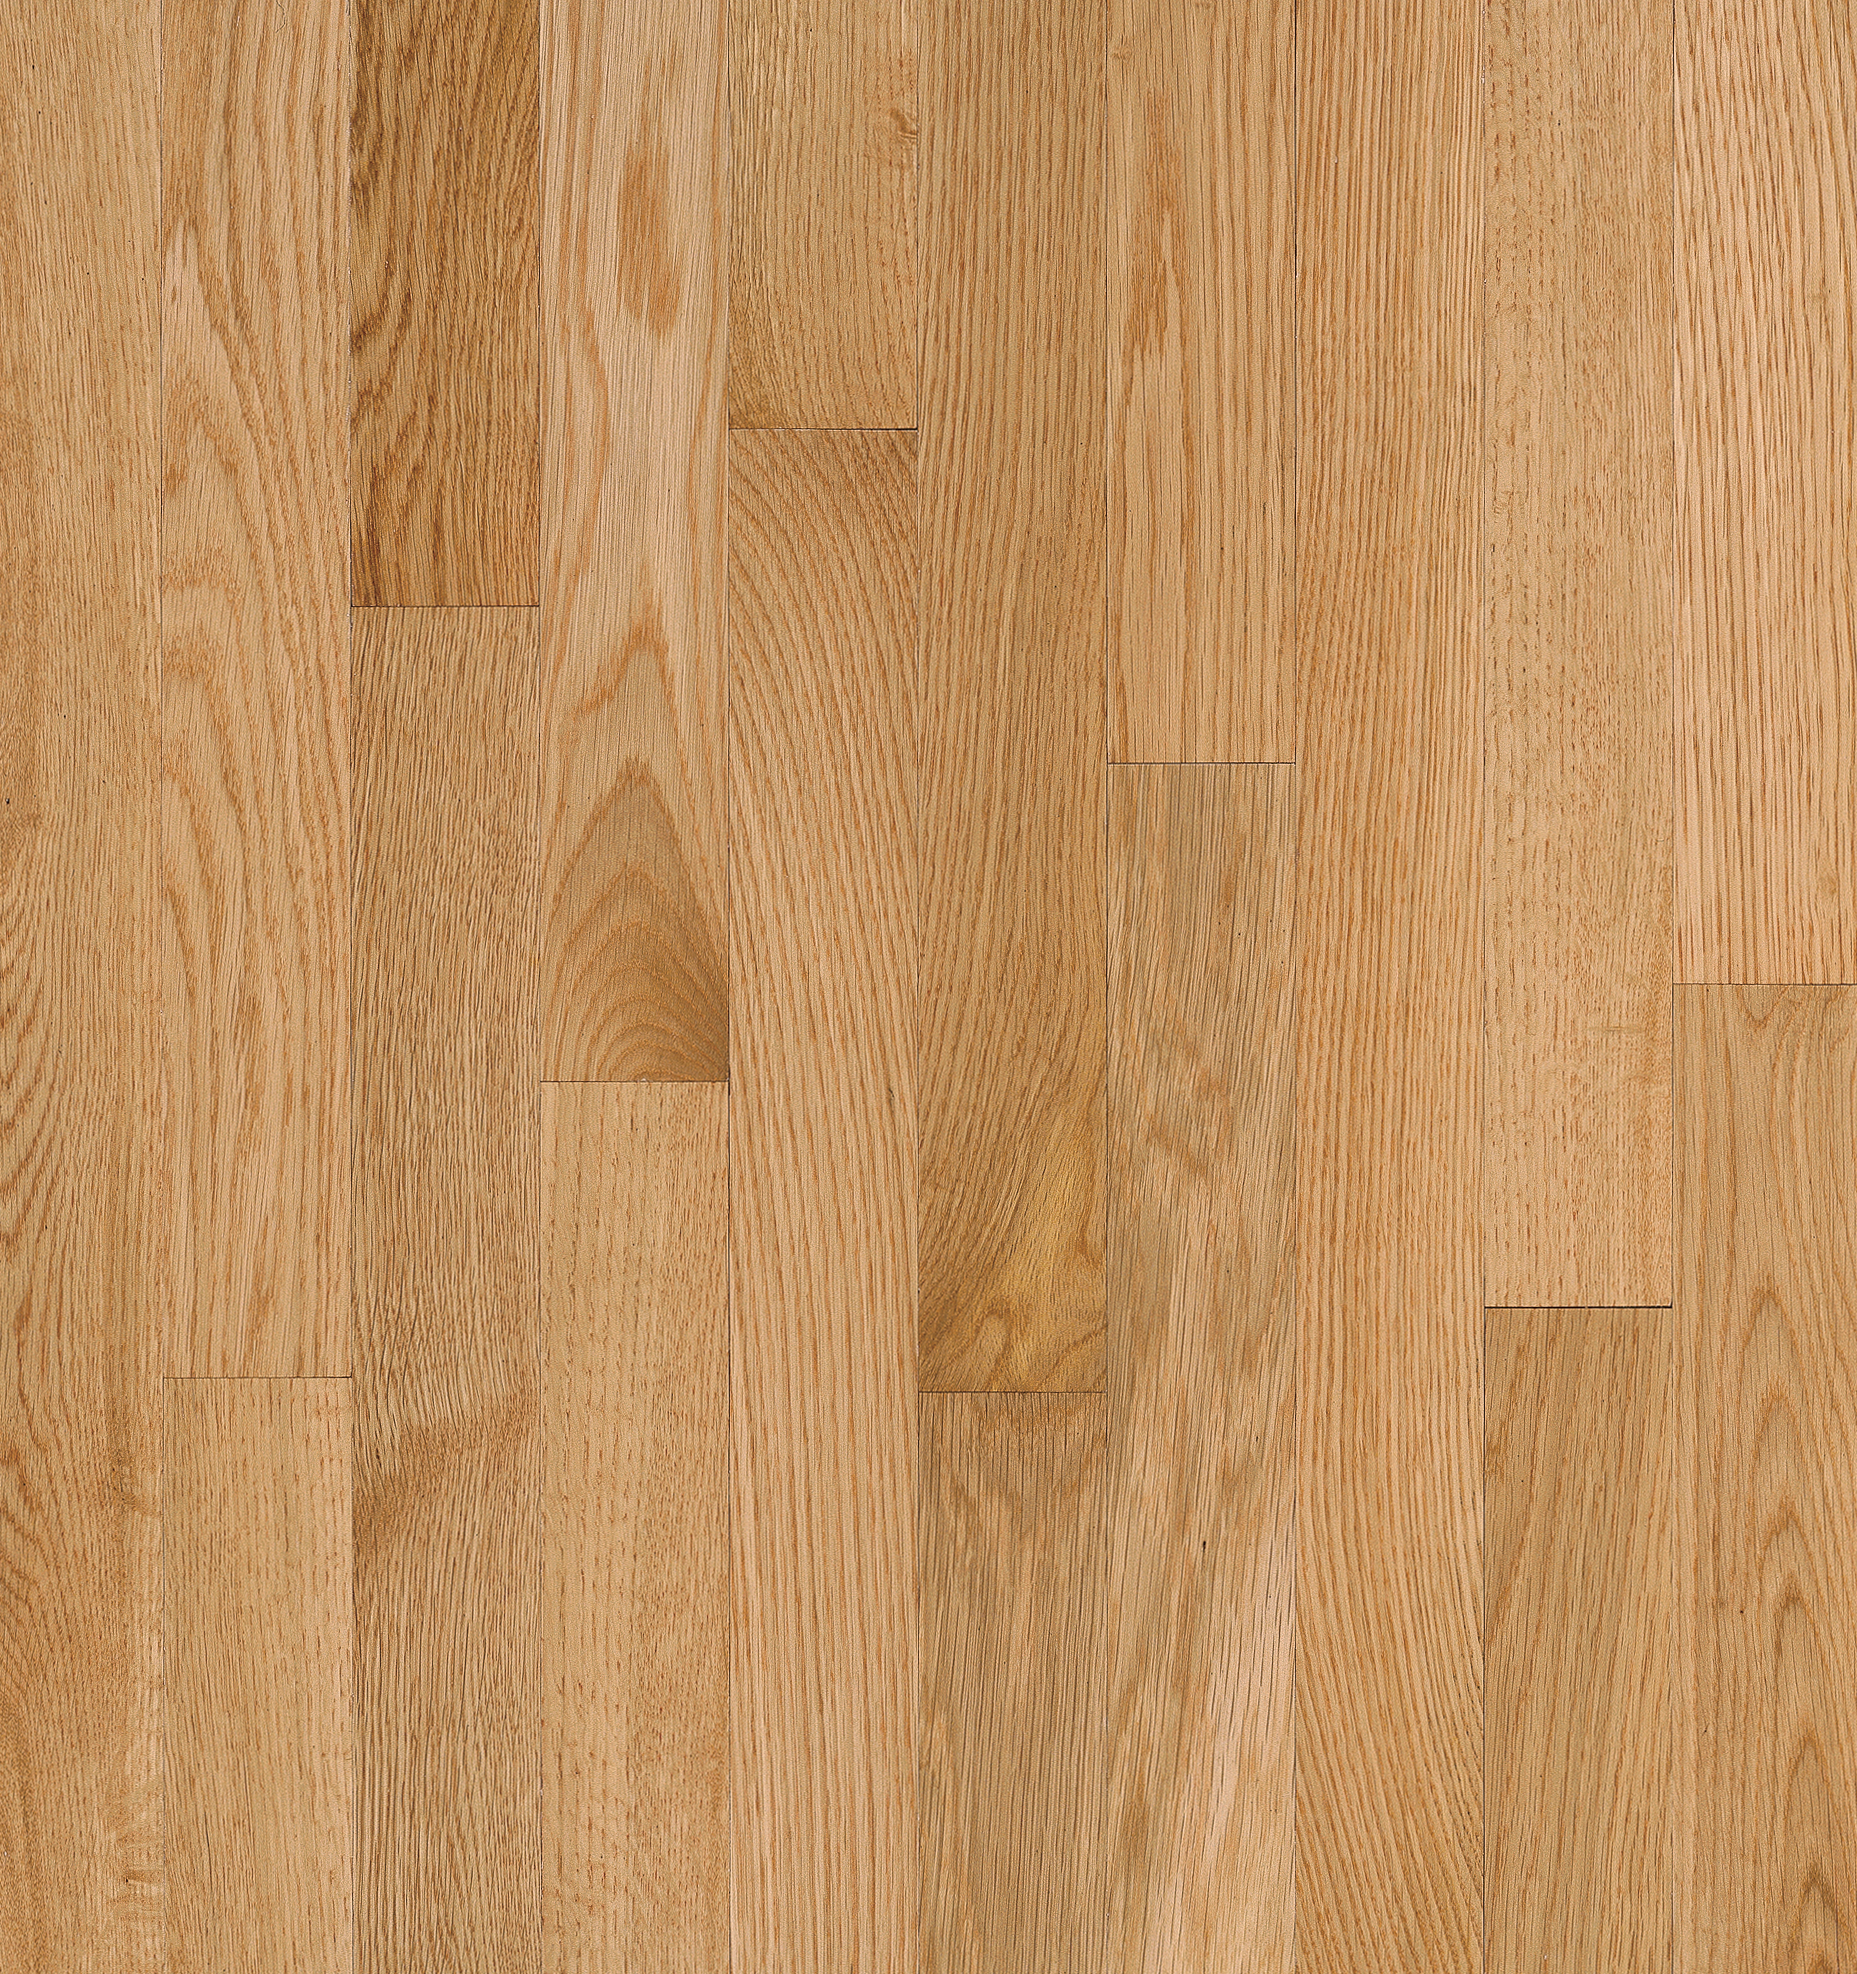 Natural Choice Natural Solid Hardwood C5010LG